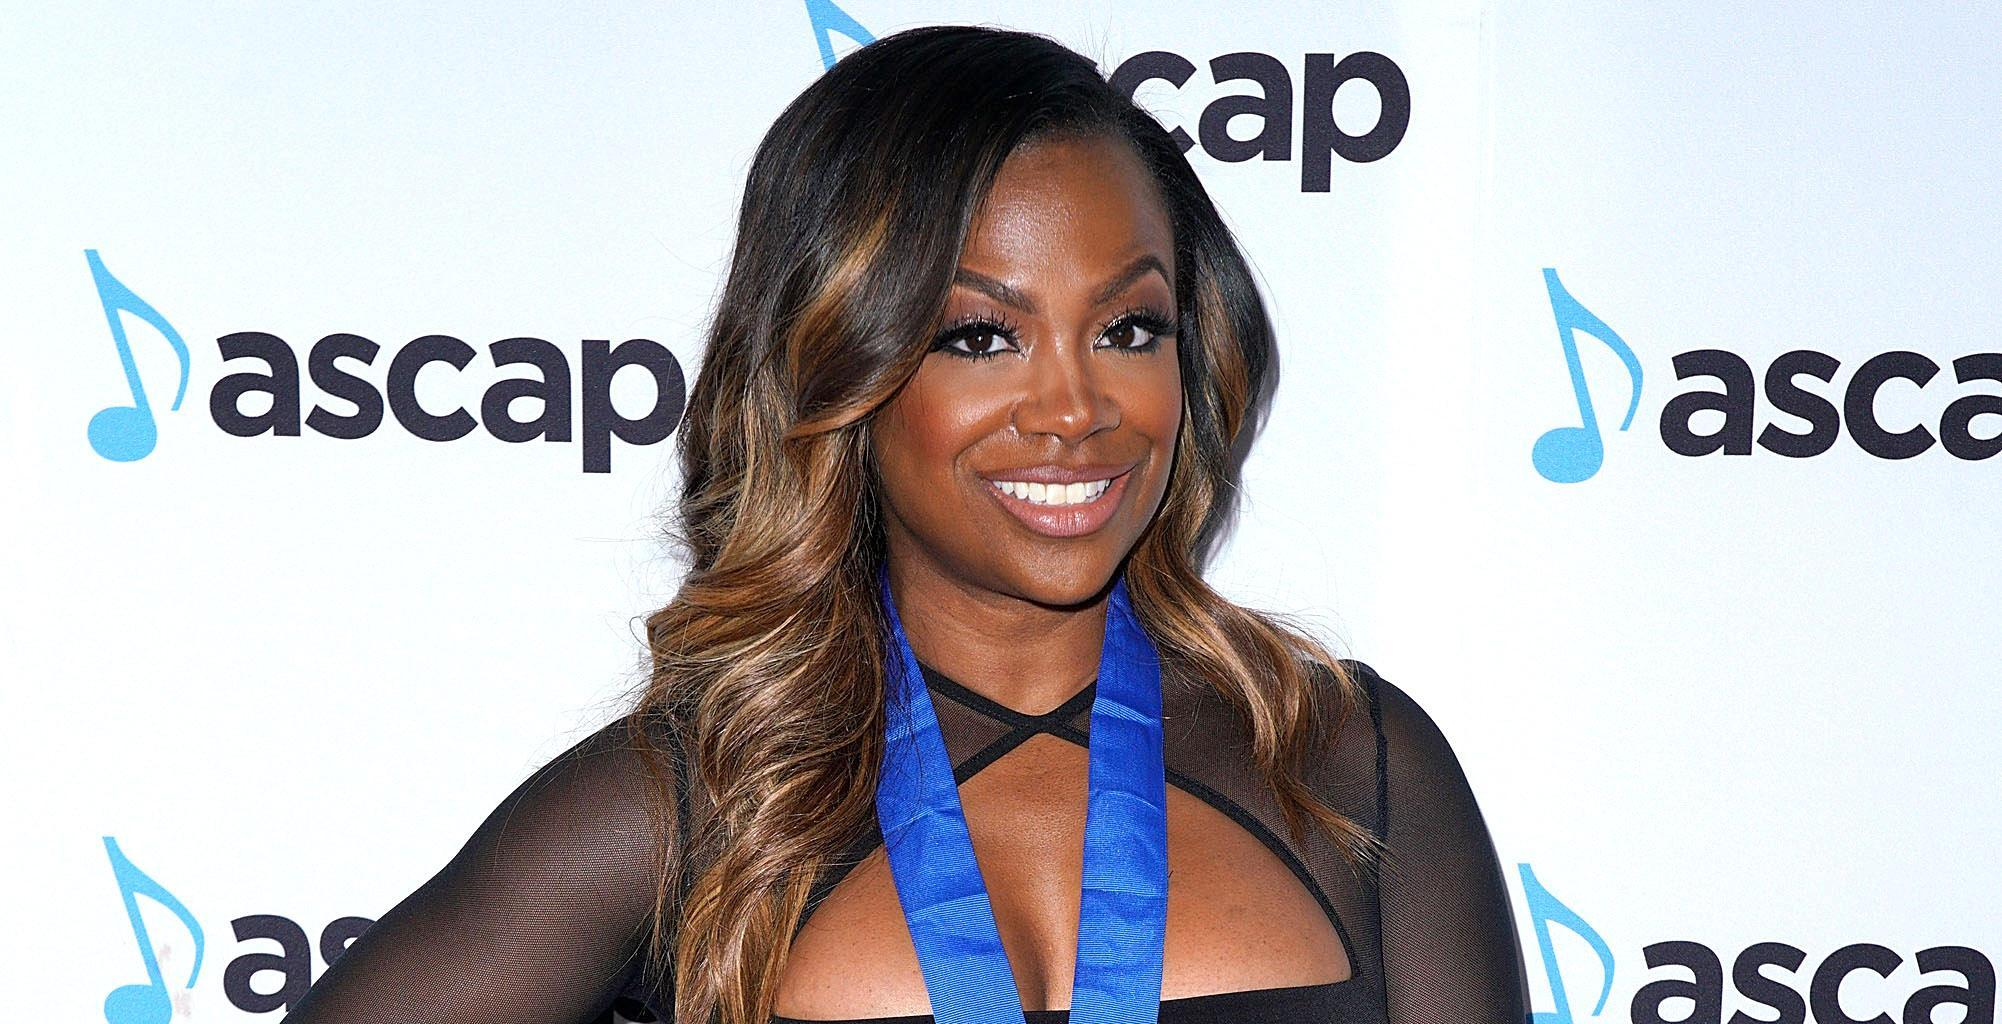 Kandi Burruss Is Featured In 'Forbes Women' - She Says She's Aiming To Be On The Cover Of Forbes